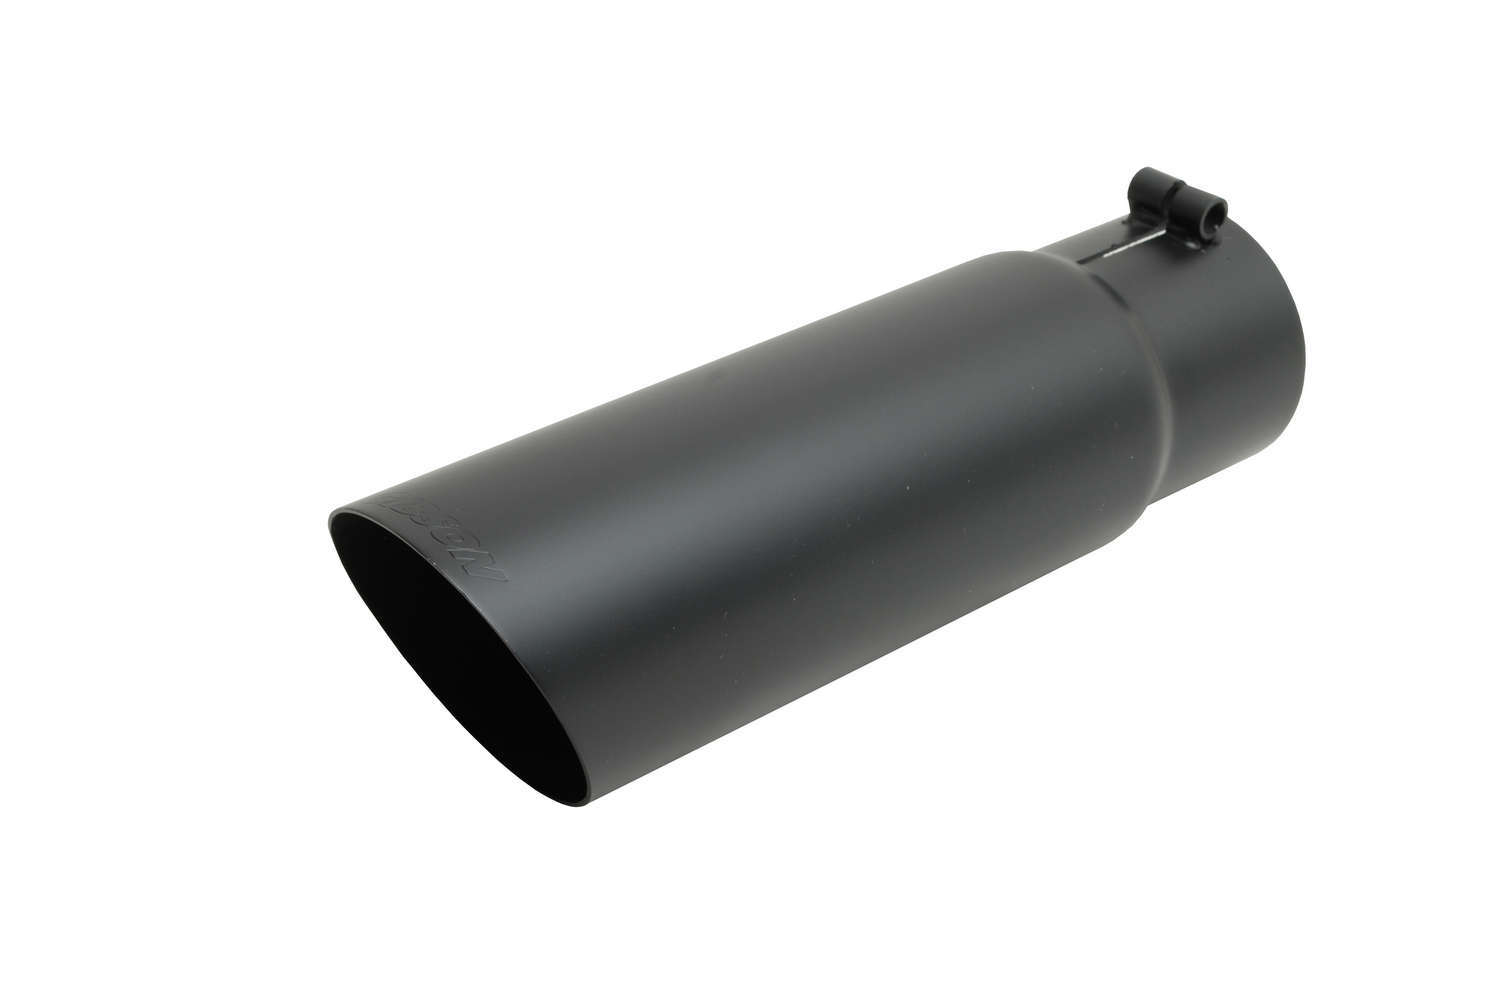 Gibson Exhaust Black Ceramic Single Wal l Angle Exhaust Tip